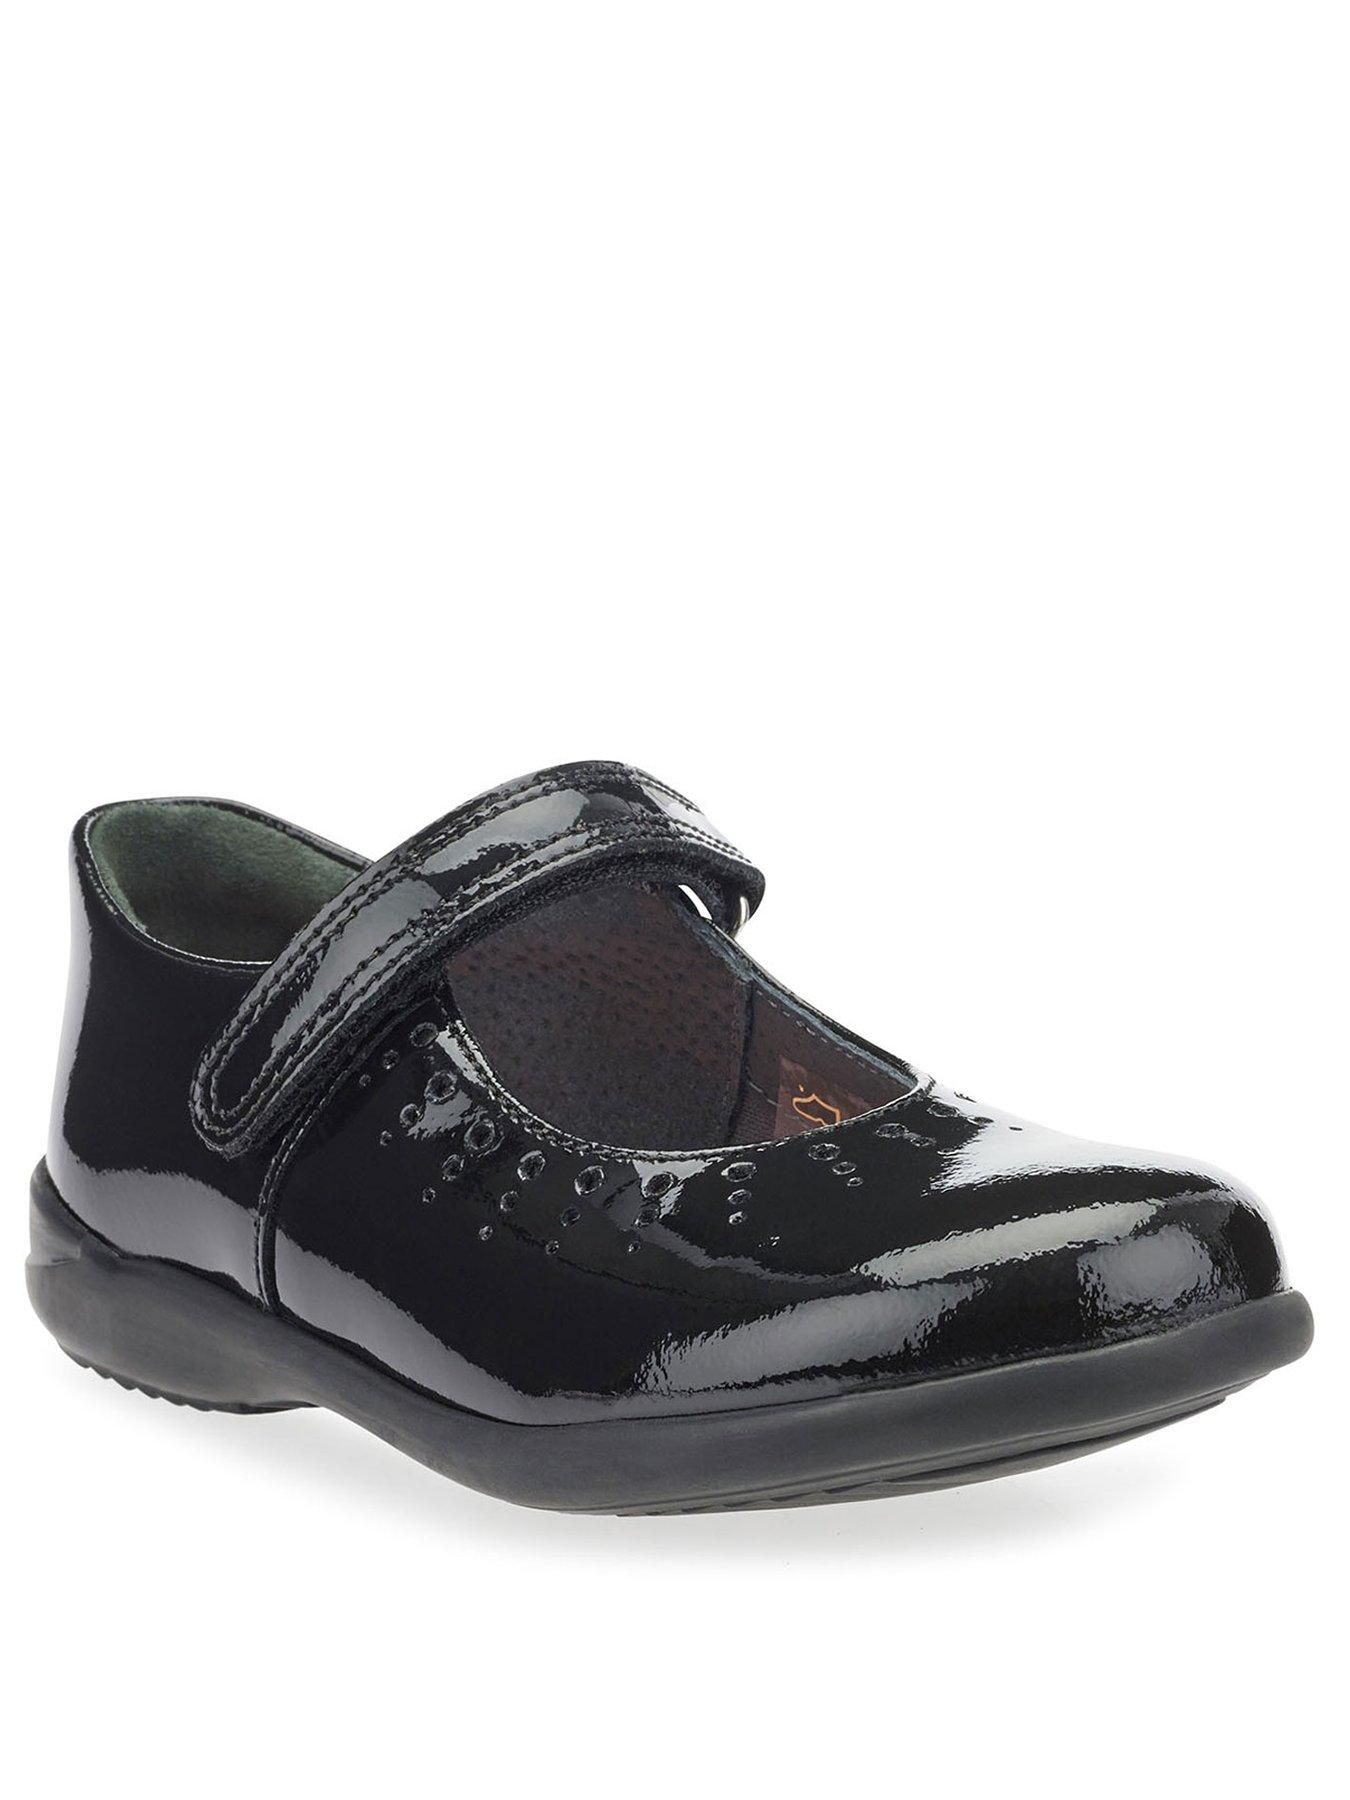 H - Extra Wide Fit | Shoes | Shoes